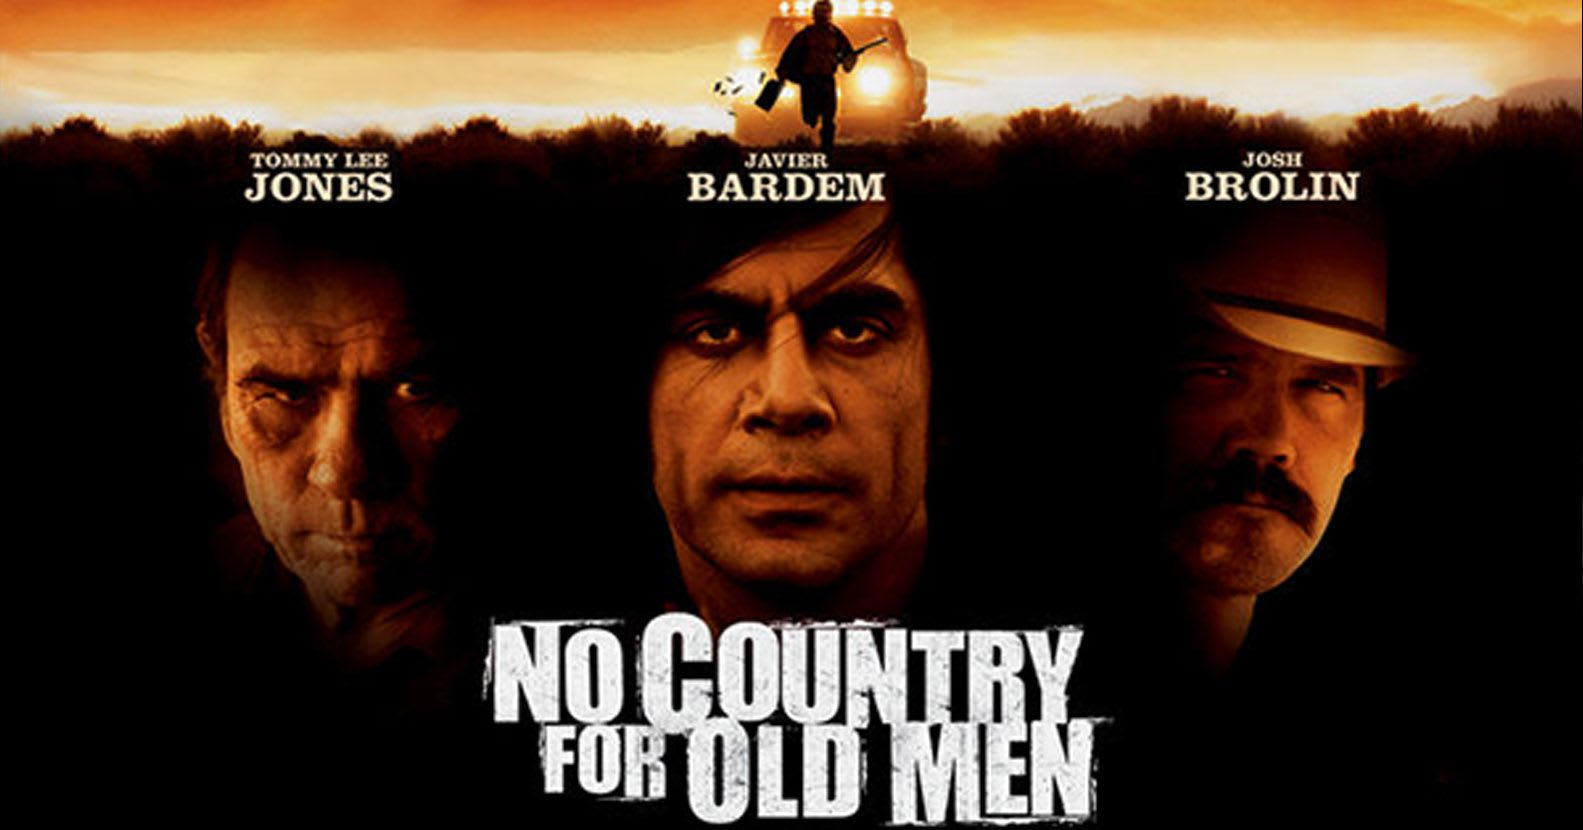 No Country For Old Men Film Review And Analysis